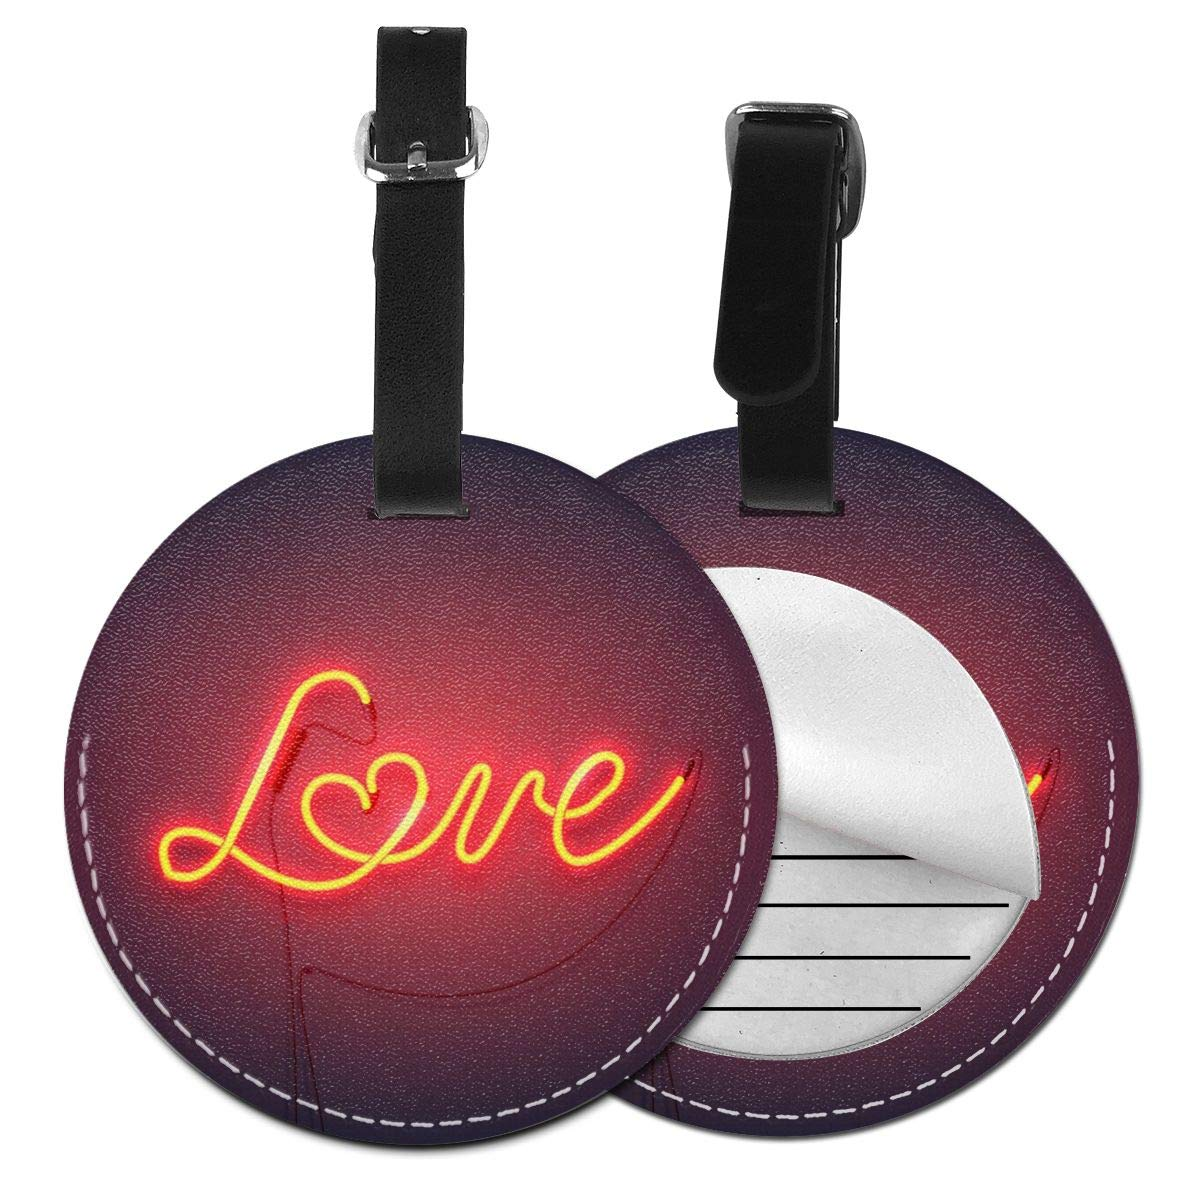 Love On A Dark Background Luggage Tags Leather Case Luggage Bag Backpacks Tags Travel Tags 4 Pack by Rachel Dora